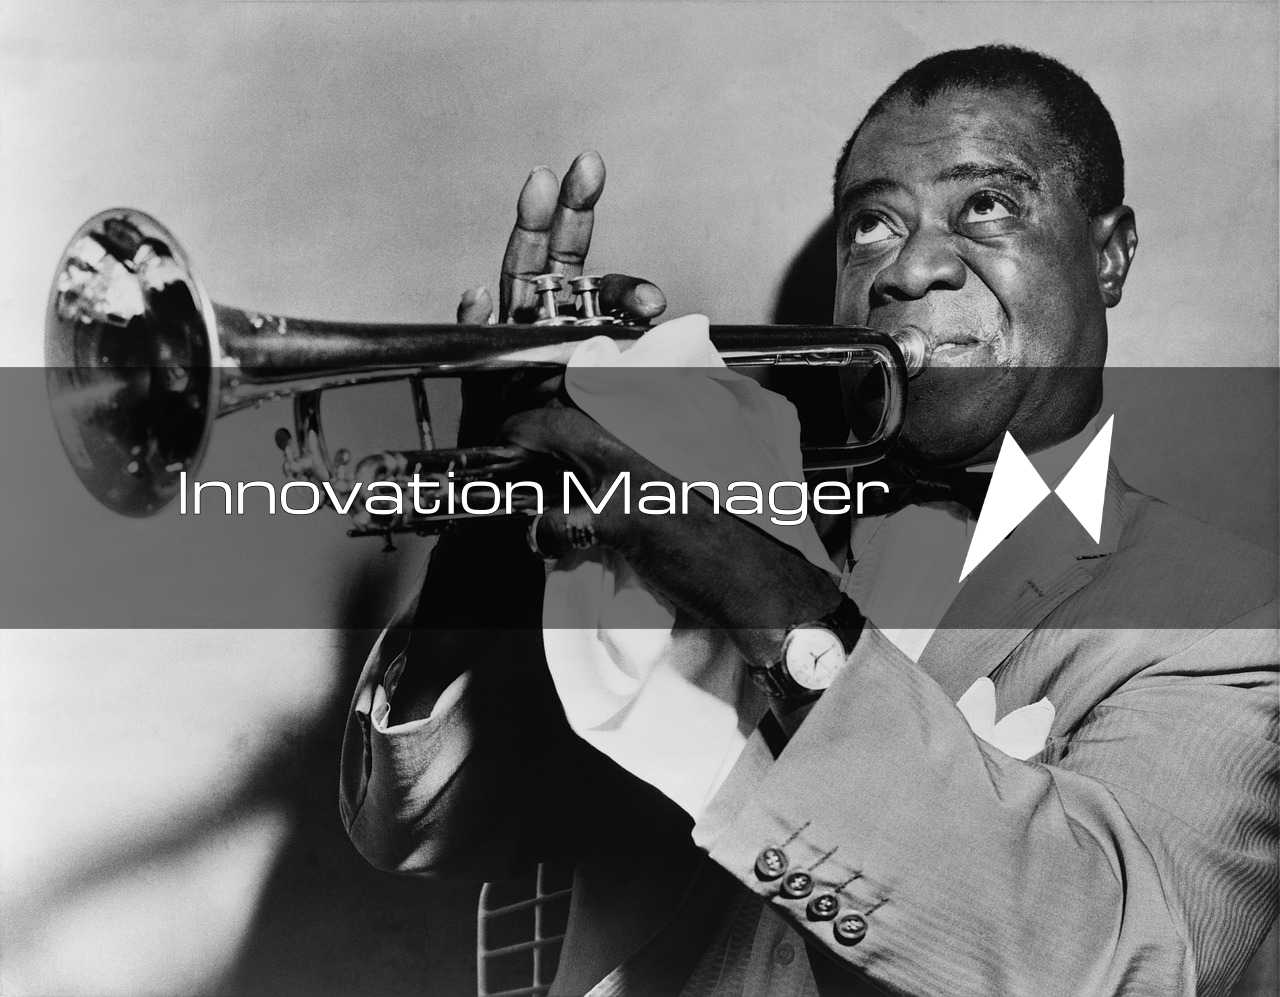 Innovation Manager come il leader di un'orchestra jazz